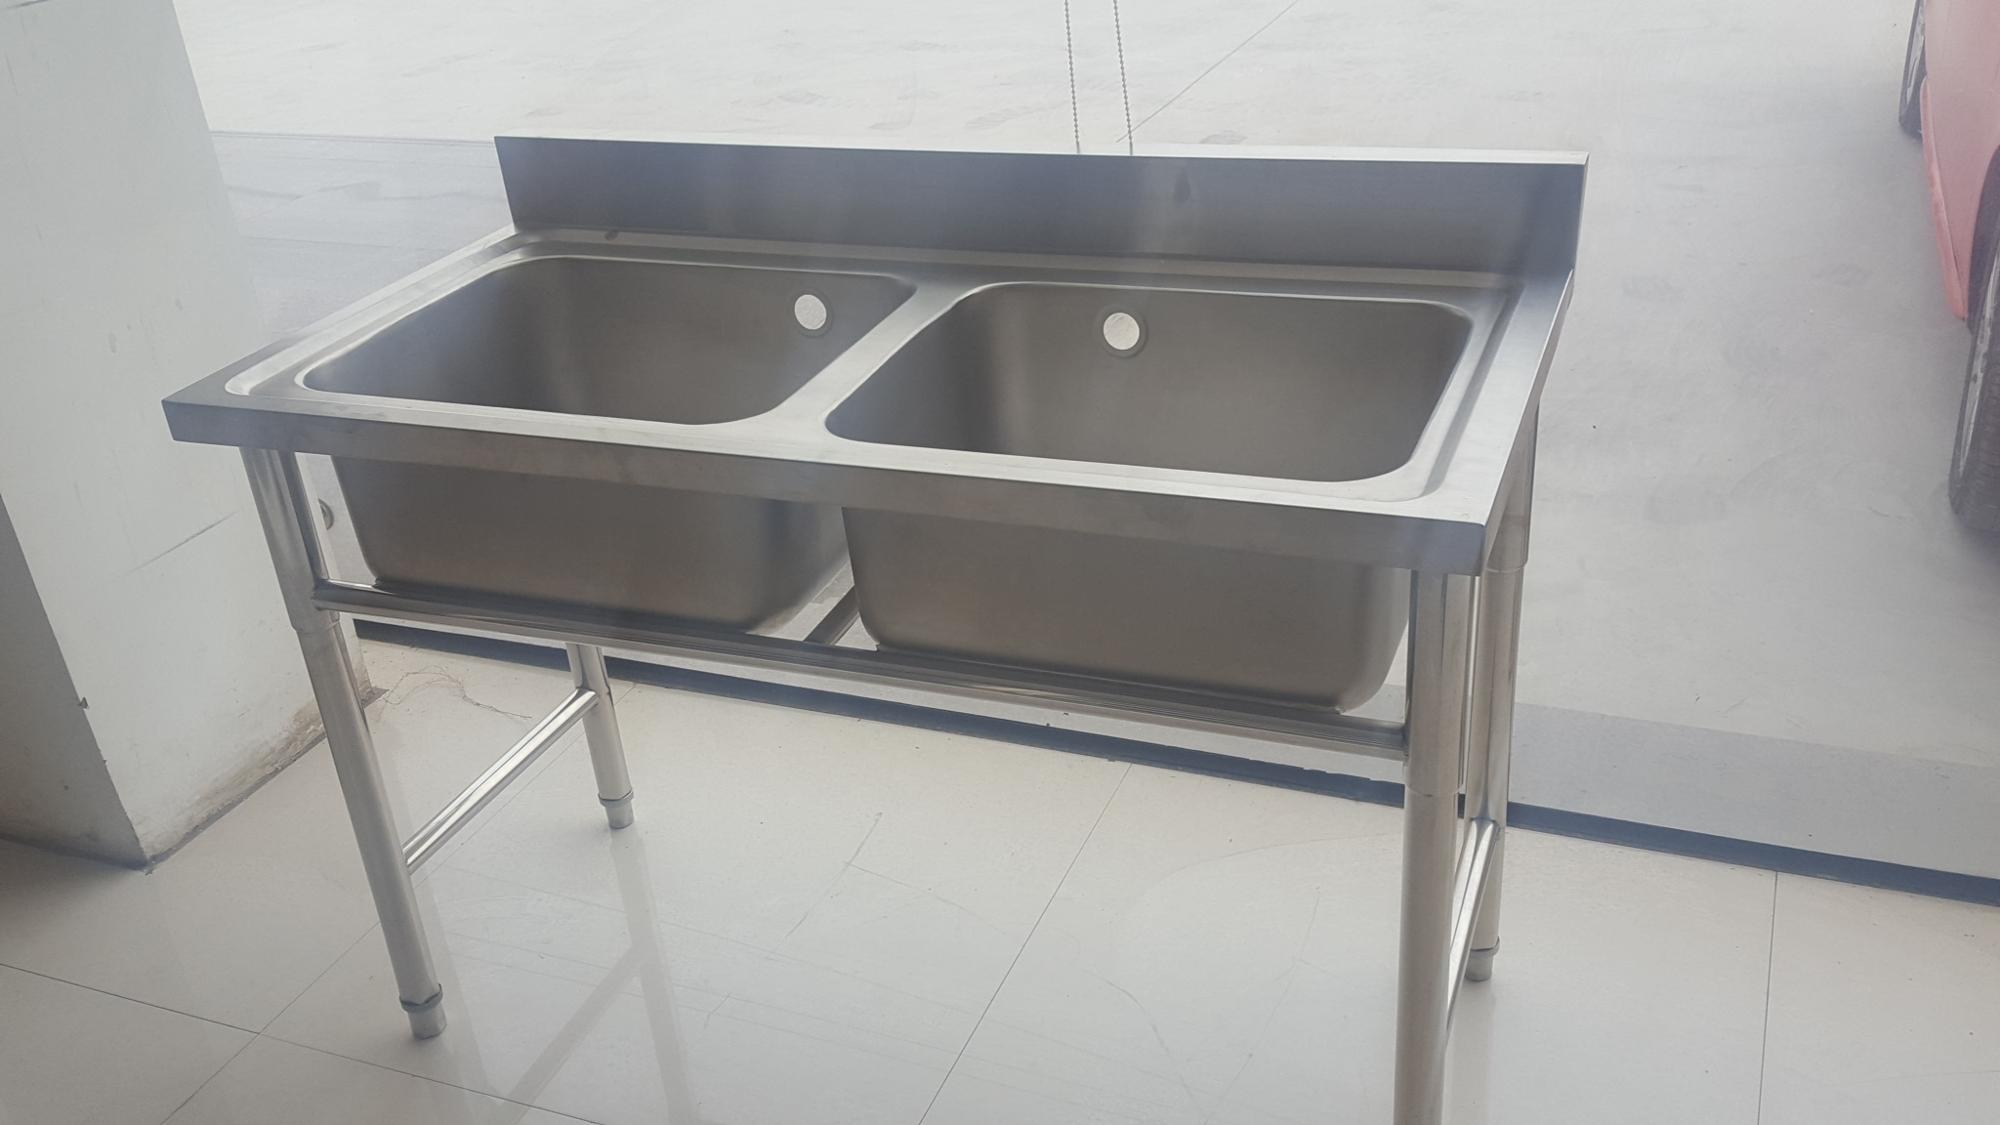 Commercial Kitchen Hot Sale 300mm Deep Bowl Stainless Steel Kitchen Sink Floor Stand Buy 300mm Deep Kitchen Sink Commercial Kitchen Sink 300mm Deep